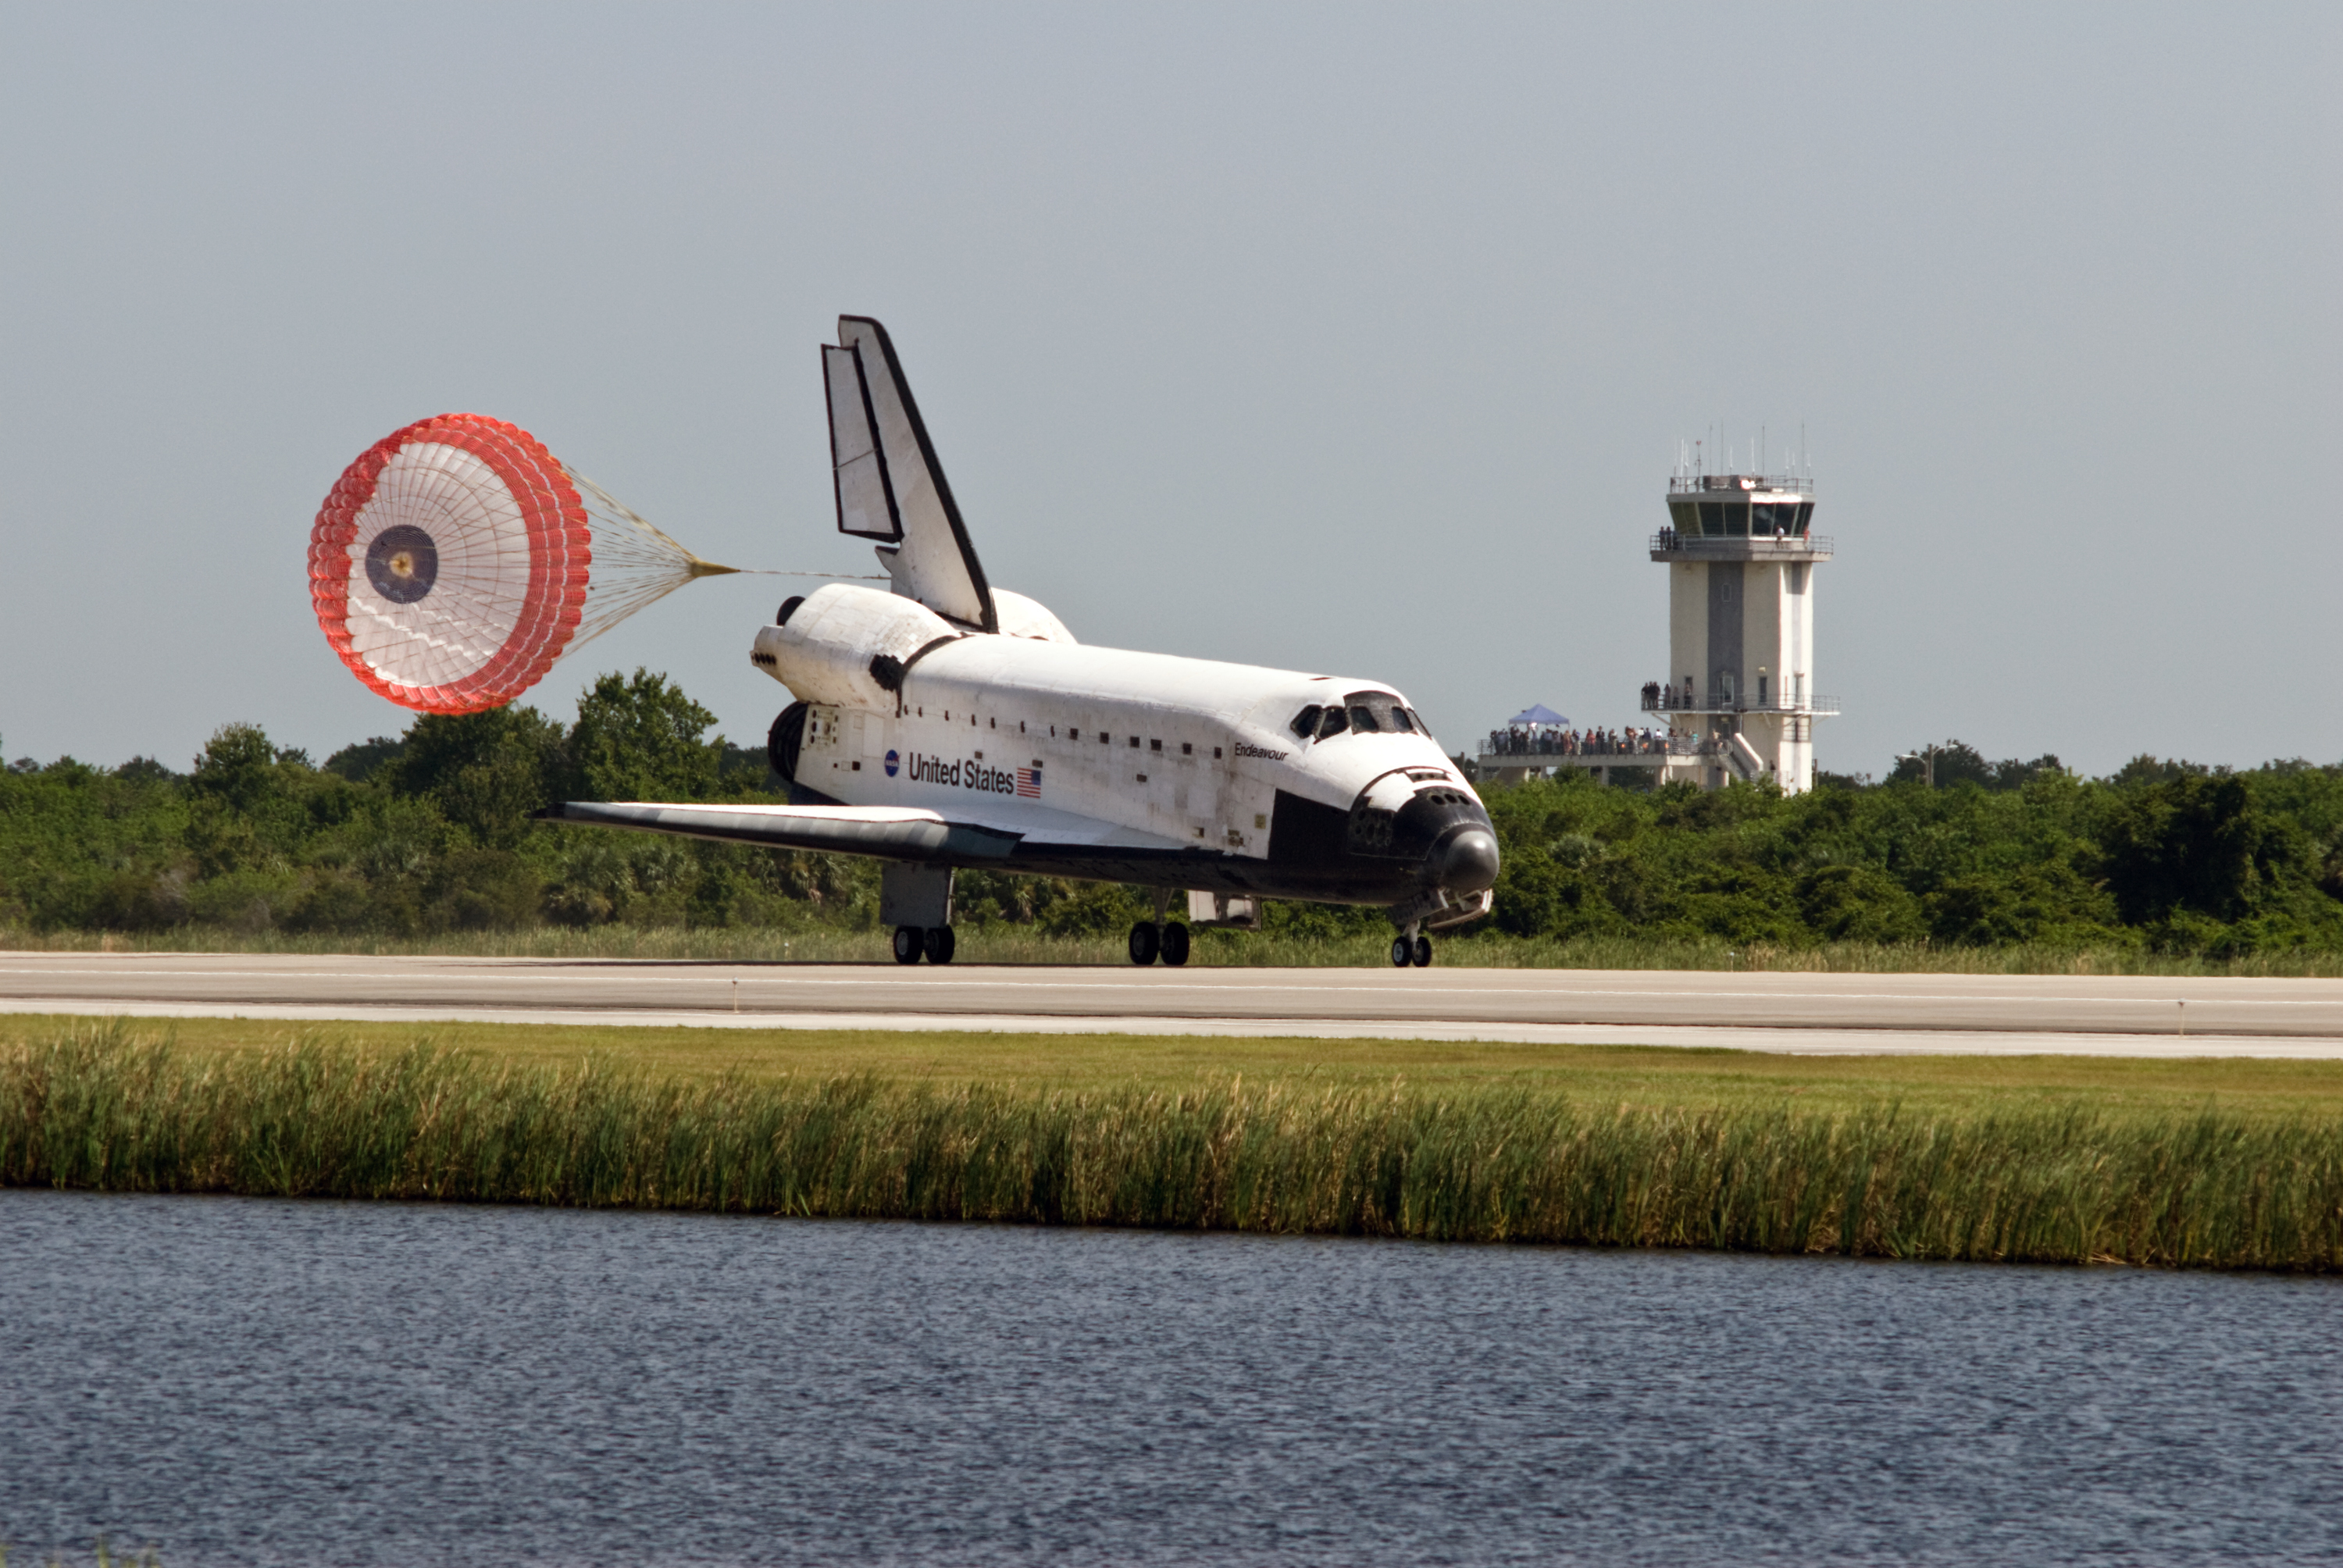 space shuttle runway - photo #14